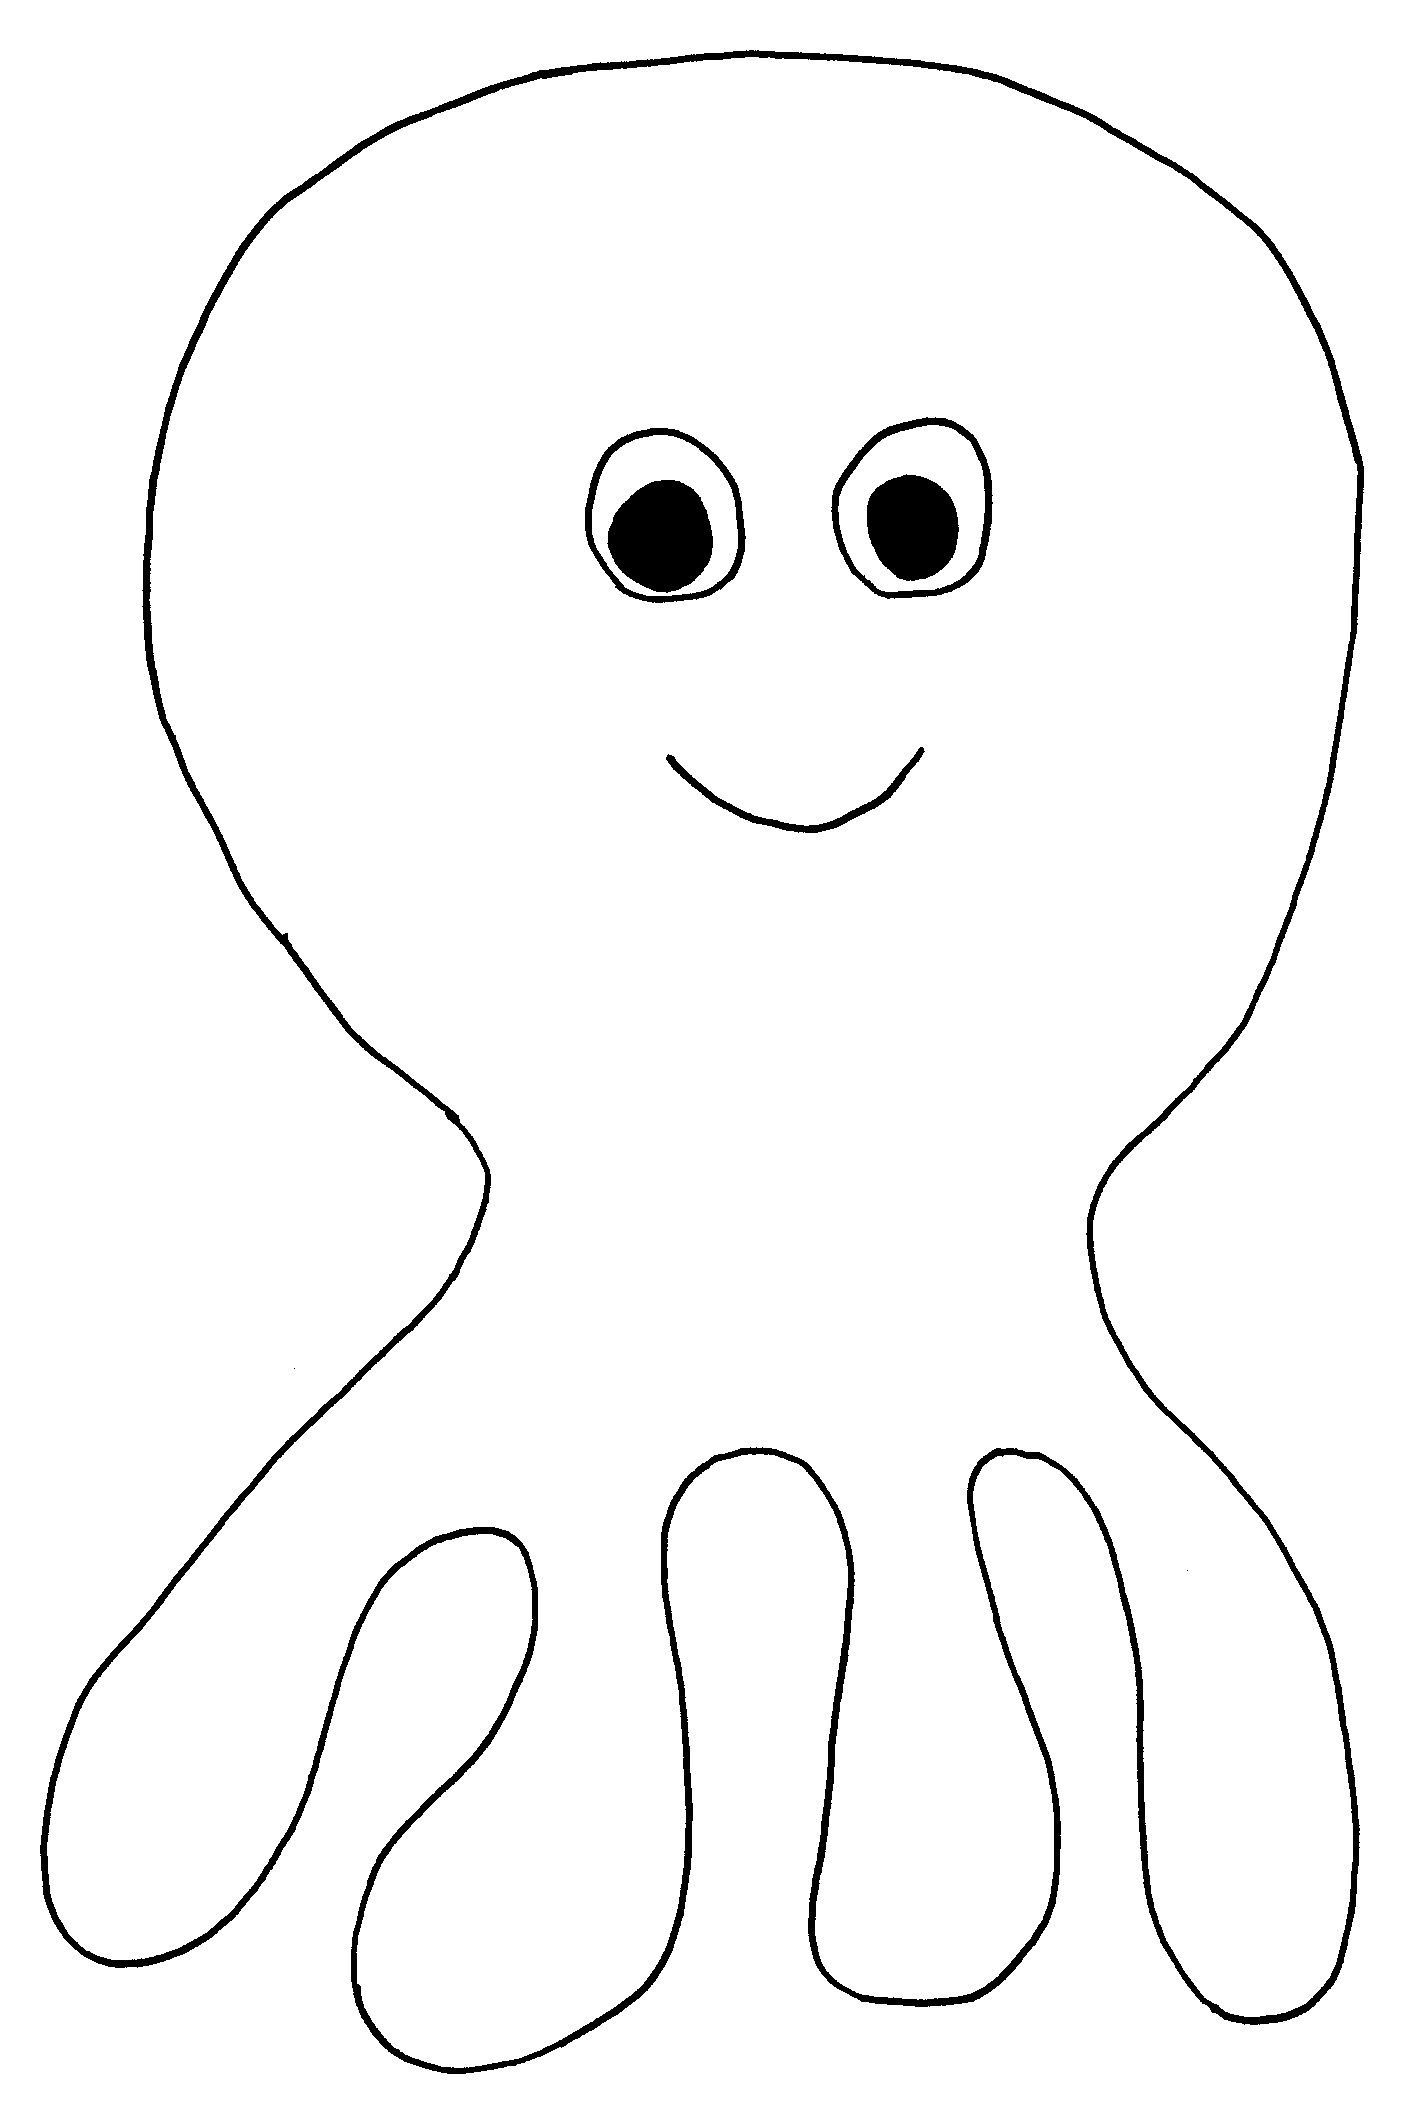 Octopus template | Skool | Pinterest | Starfish template and Template